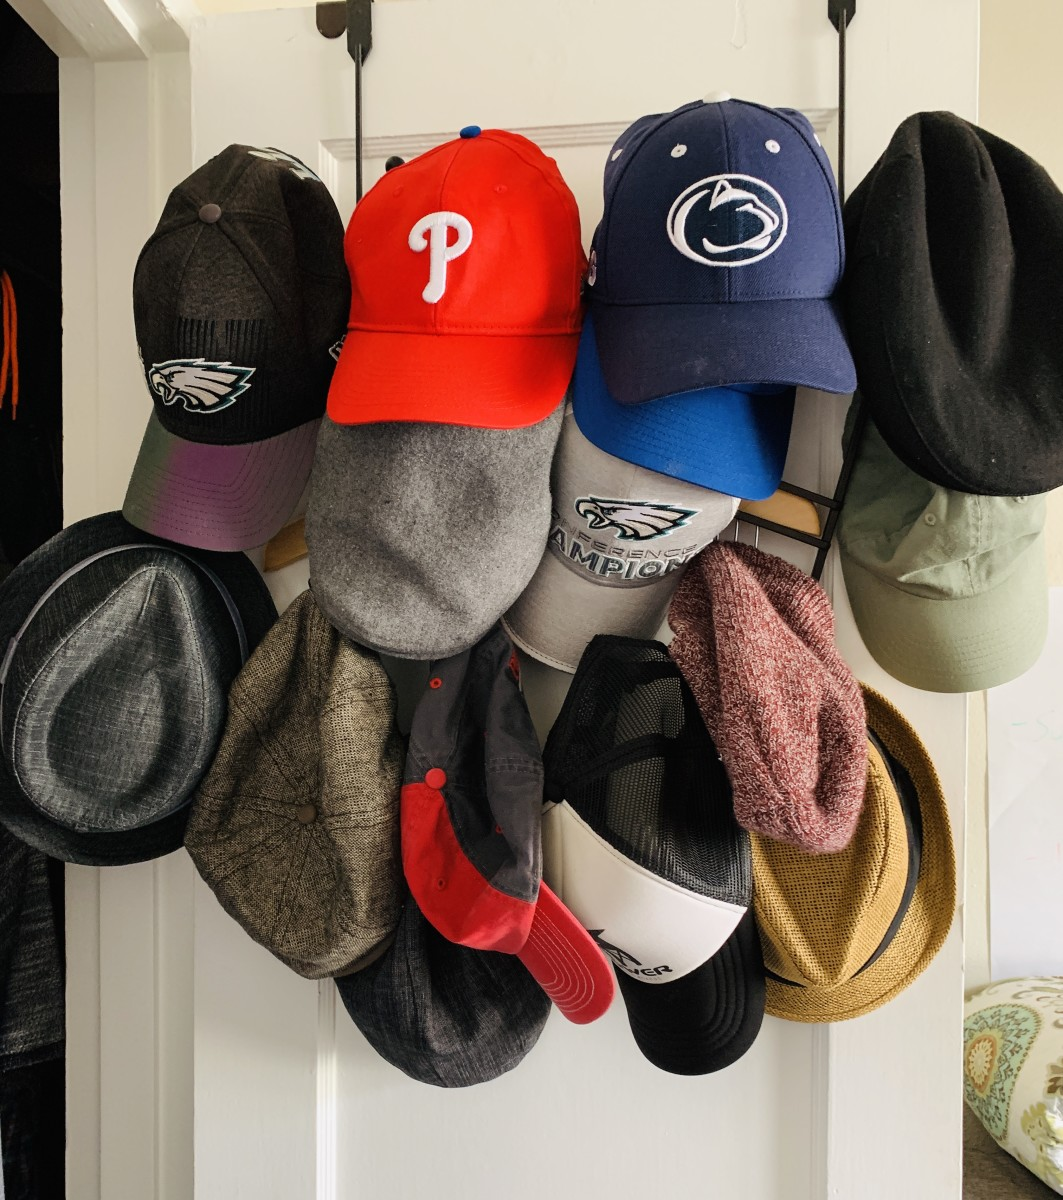 Poem: A Man with Many Hats